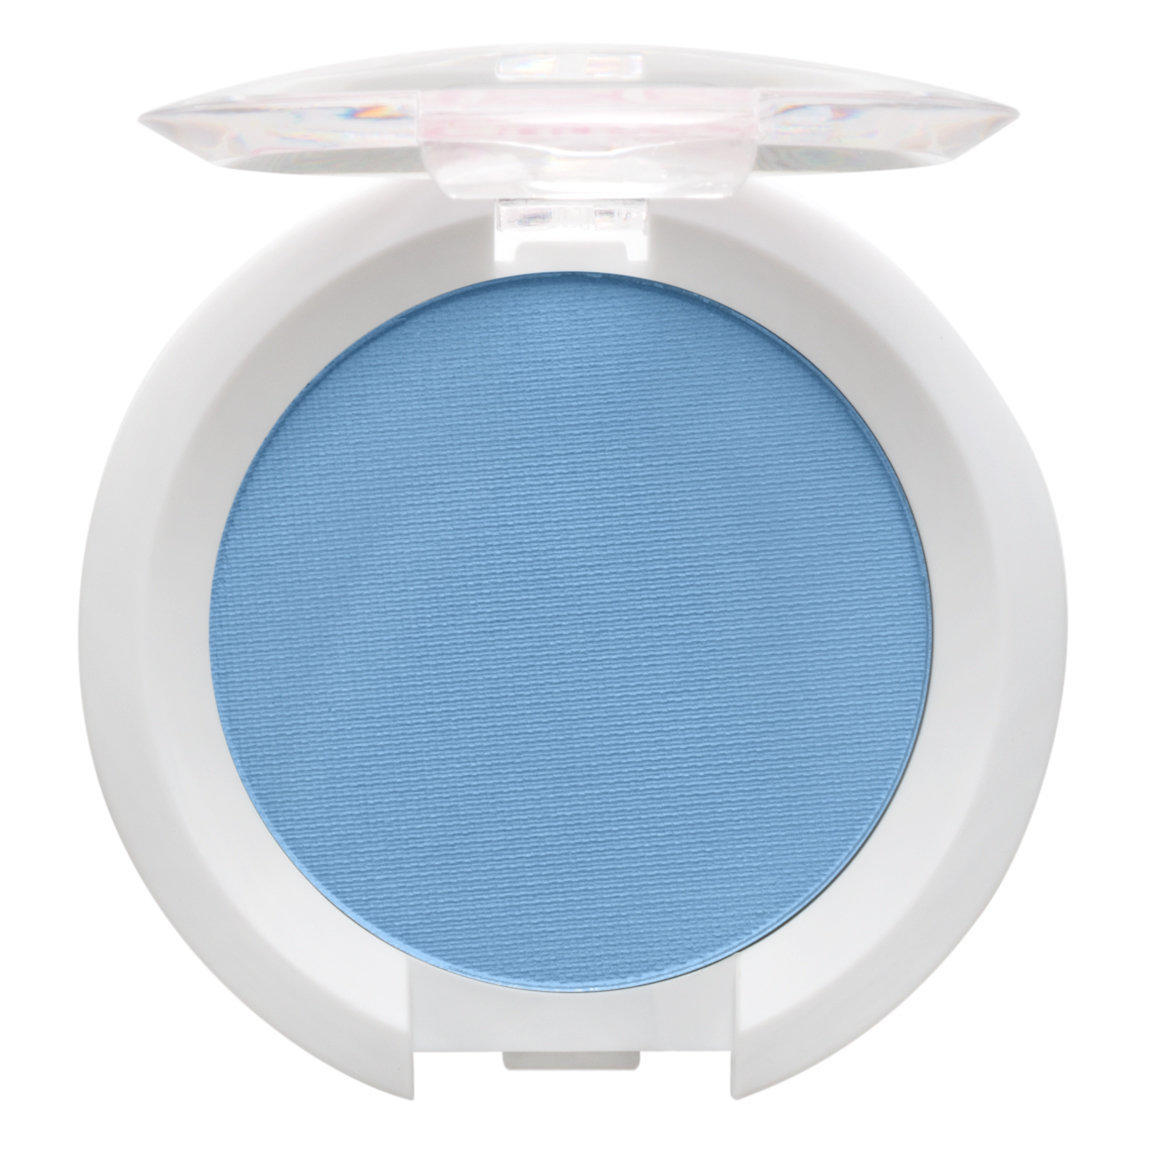 Sugarpill Pressed Eyeshadow Home Sweet Home (baby blue)